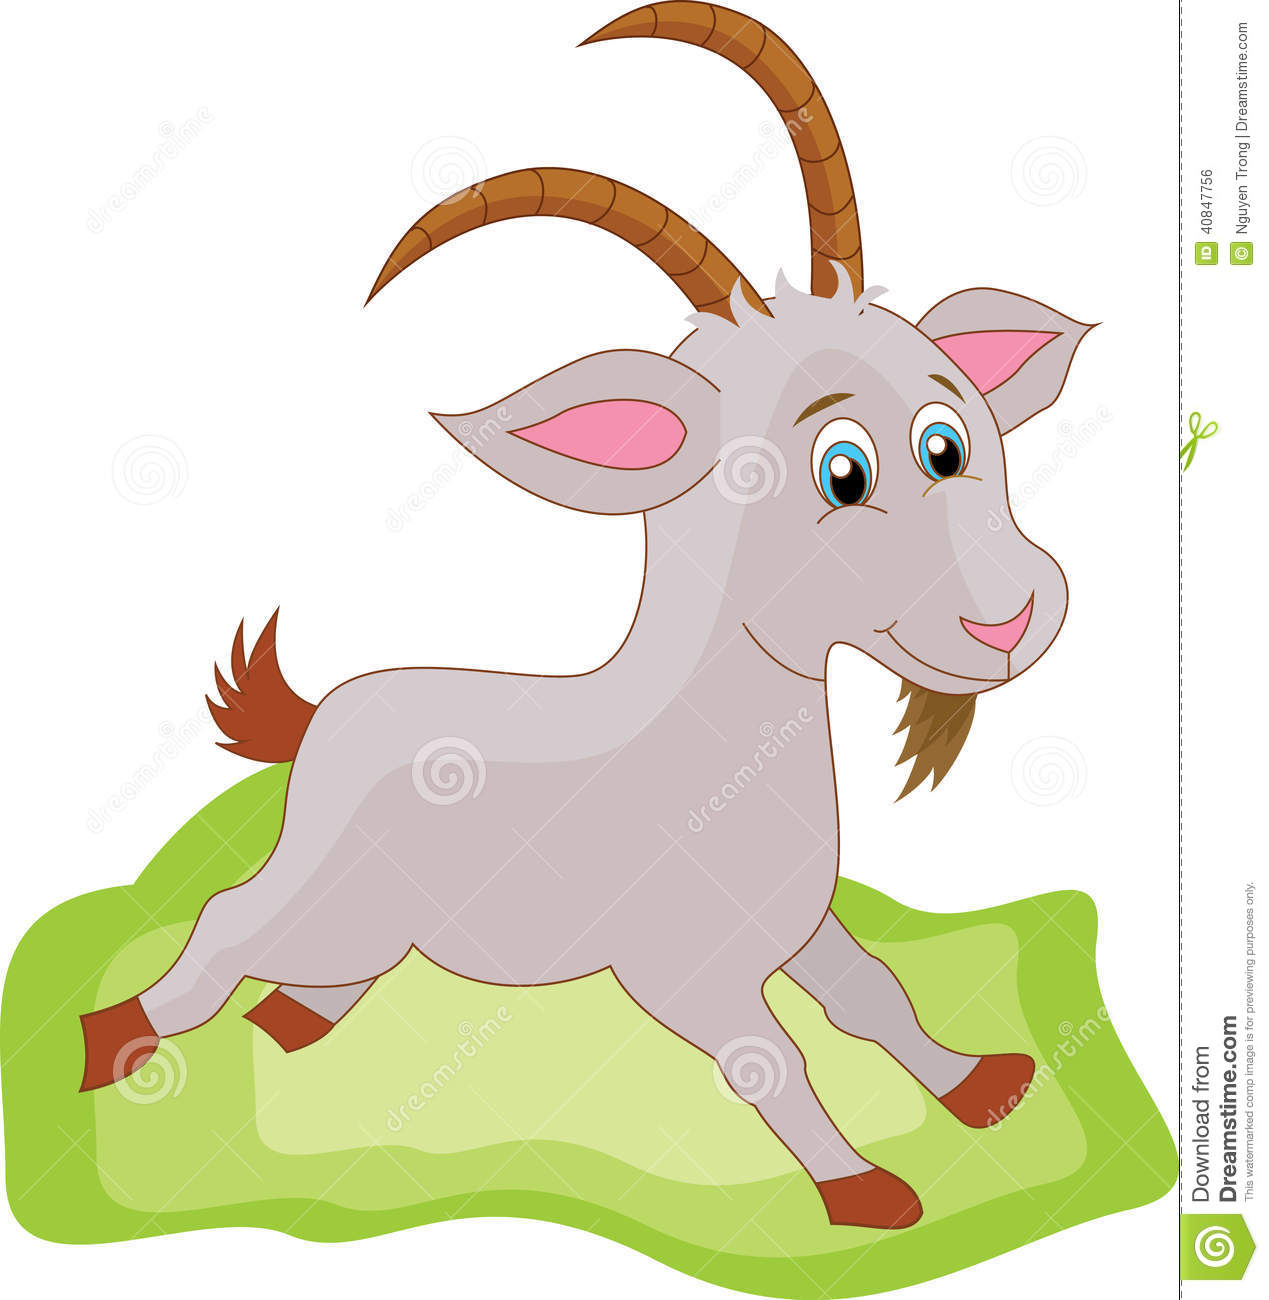 Cute Goat Clipart Goat Cartoon Stock Vector Image 40847756